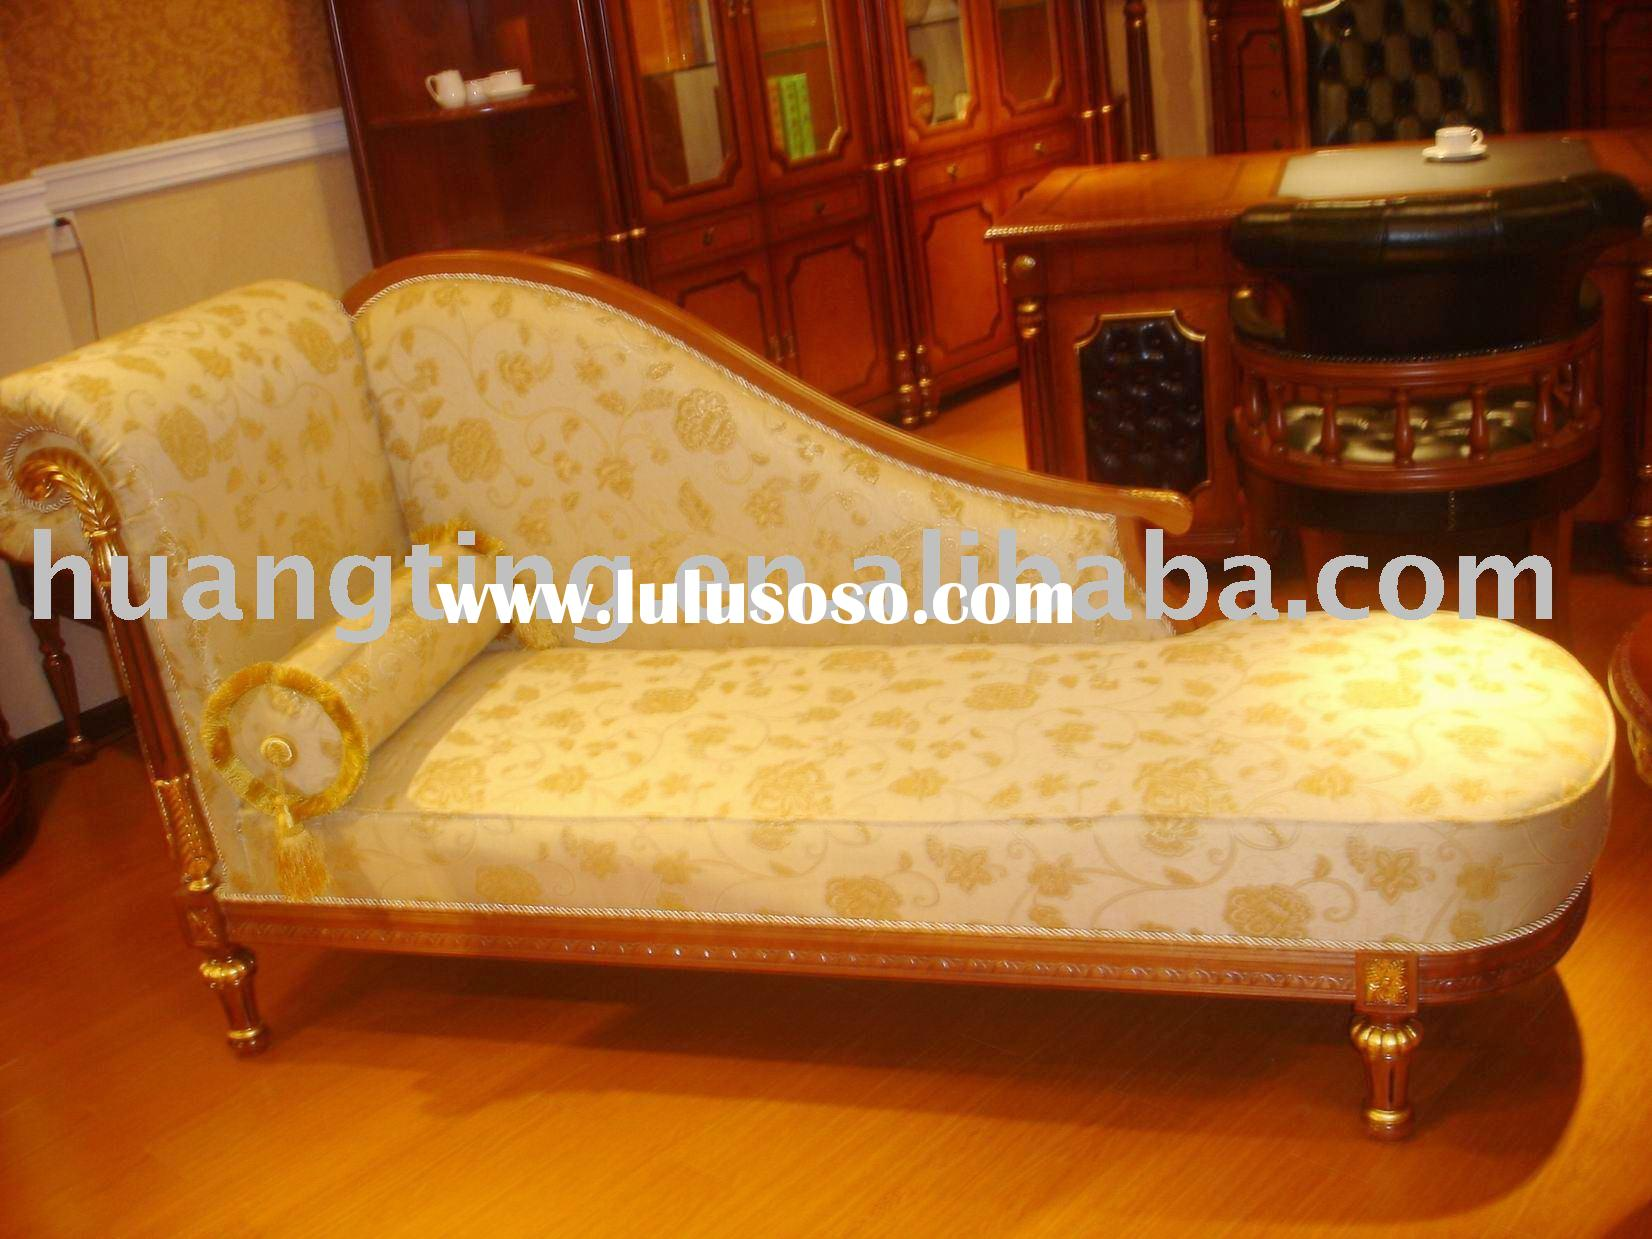 one sale royal chair,royal lounge,royal fabric sofa.chaise lounge